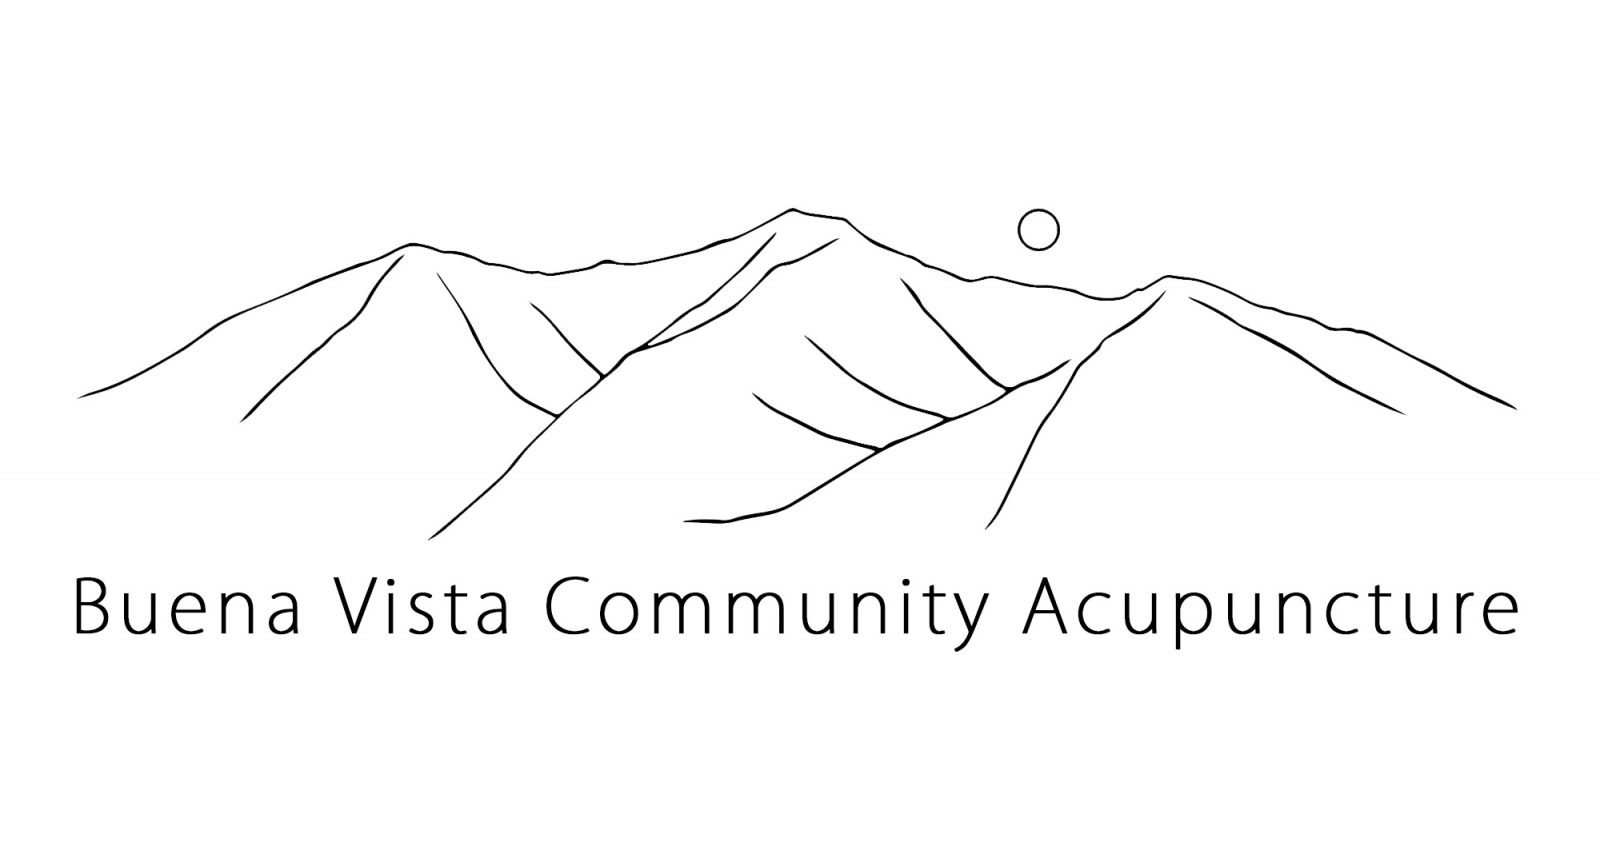 Buena Vista Community Acupuncture